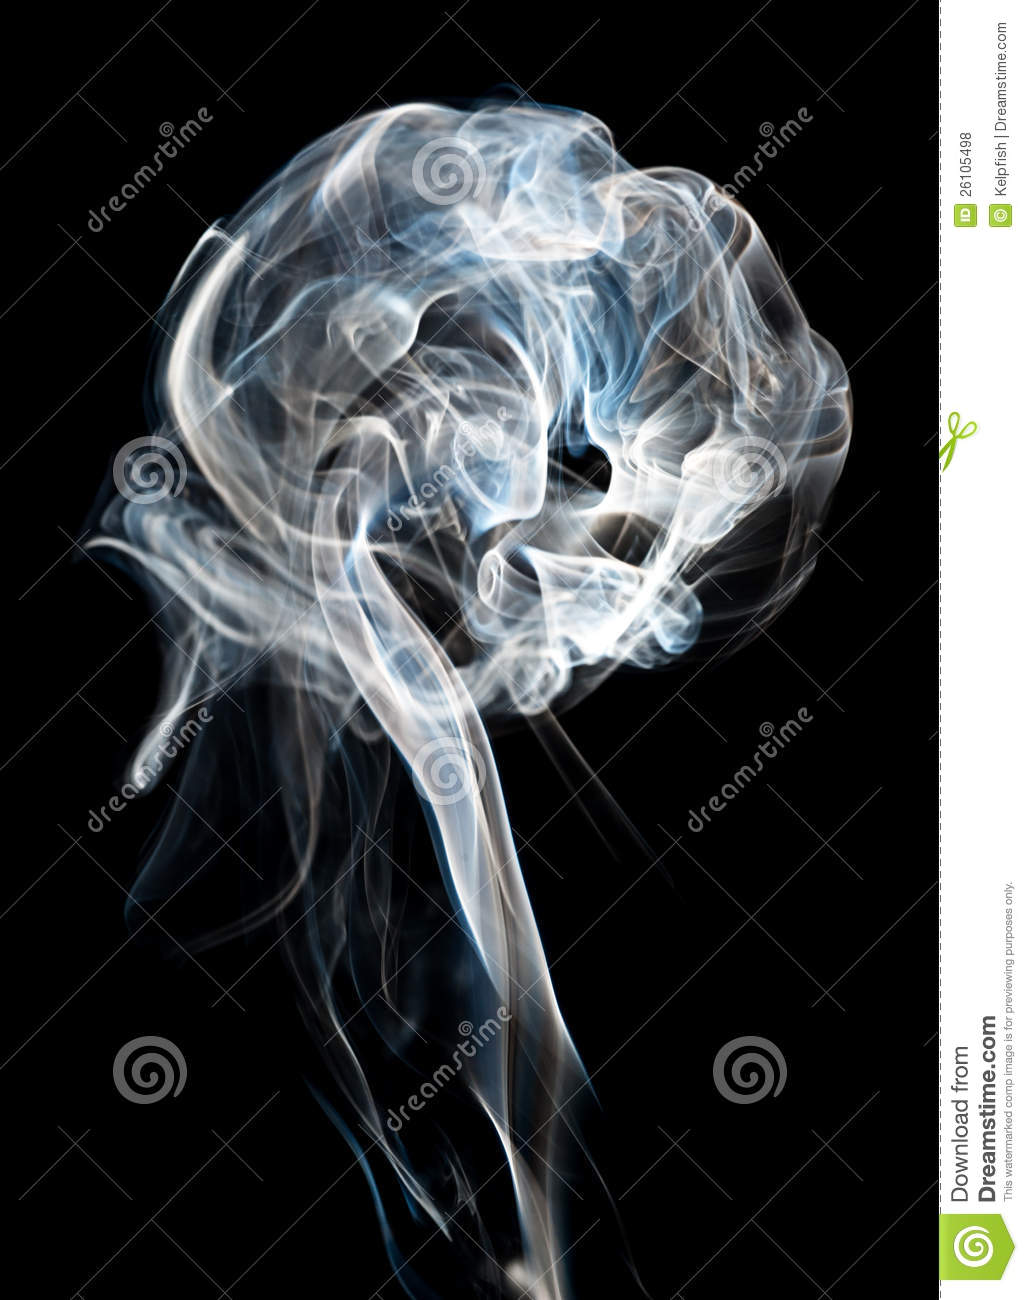 Smoke Plume Royalty Free Stock Photos   Image  26105498